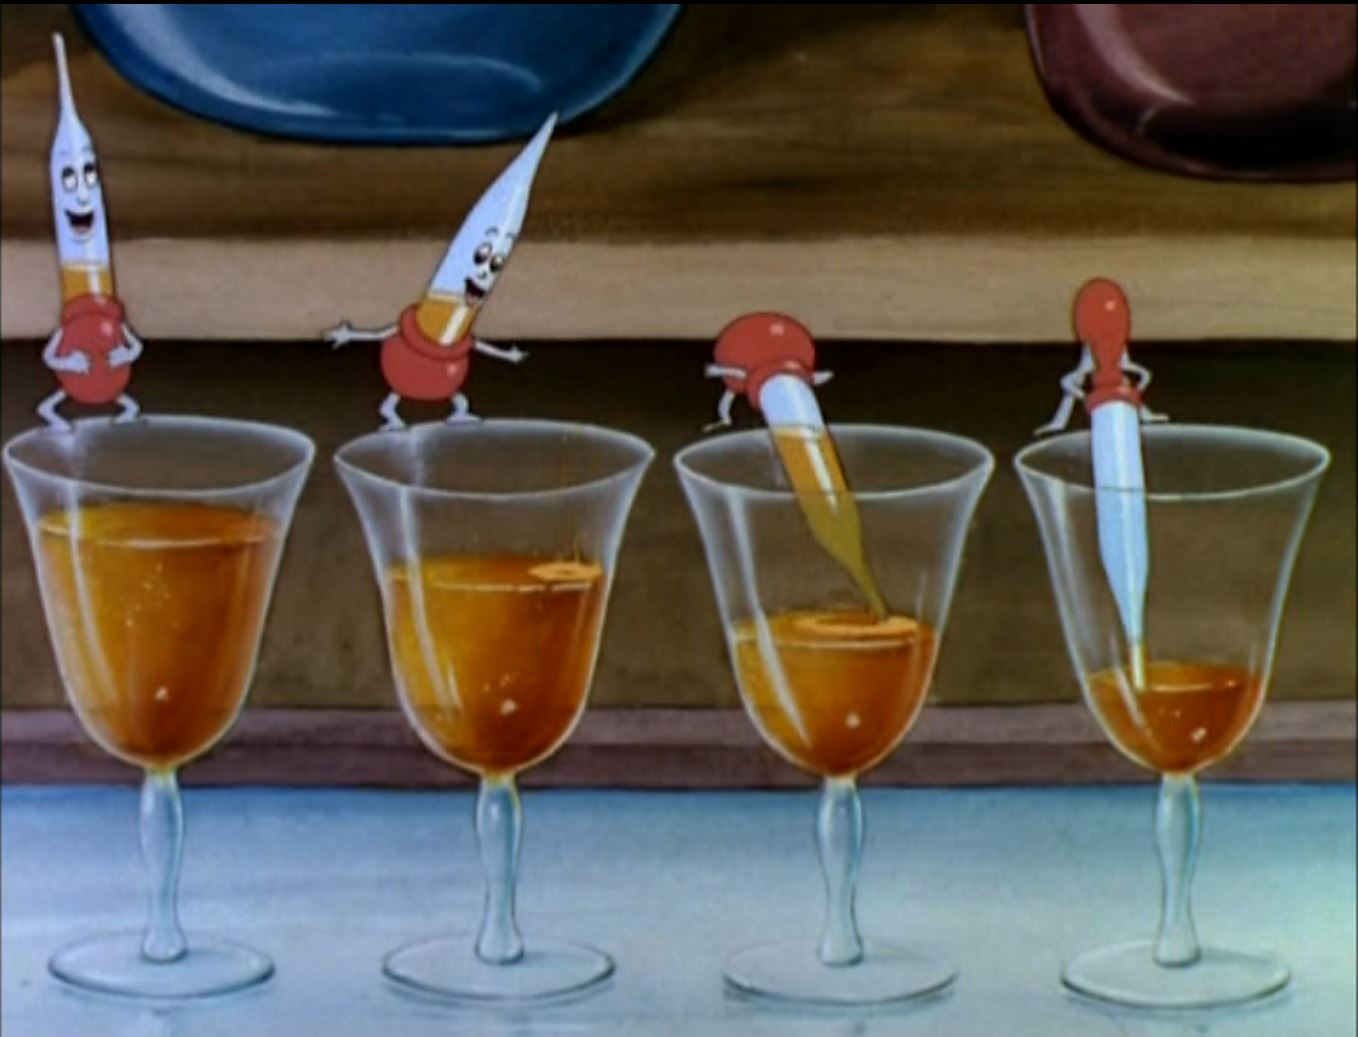 The Medicine Dropper Quartet juices up on rum in preparation for the waltz.